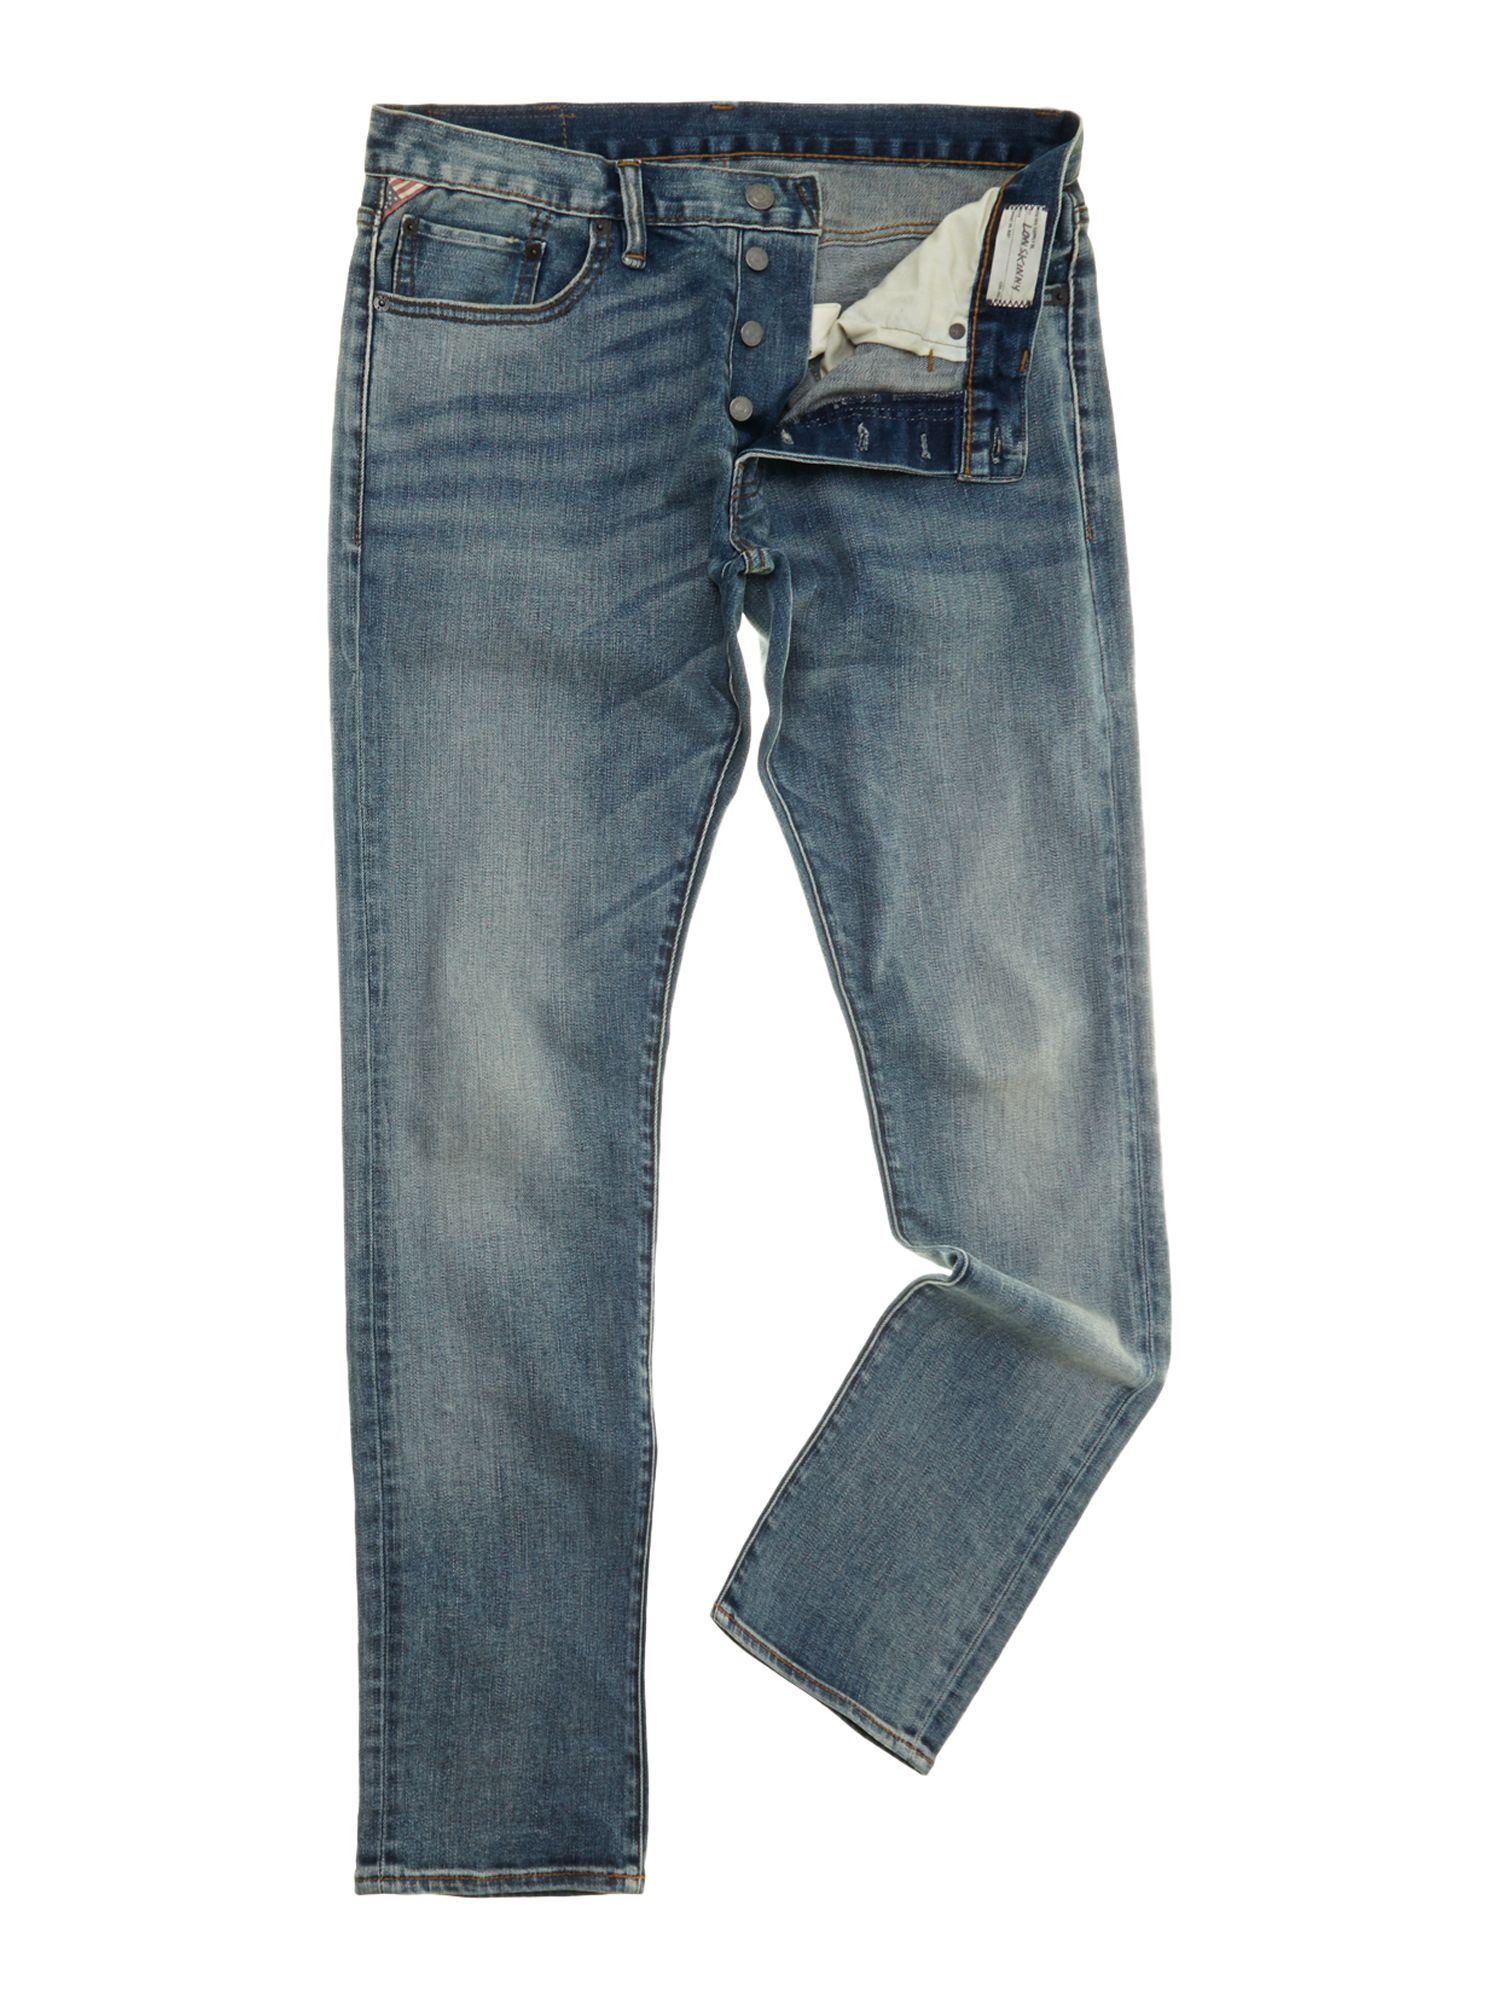 Austin low skinny fit jean